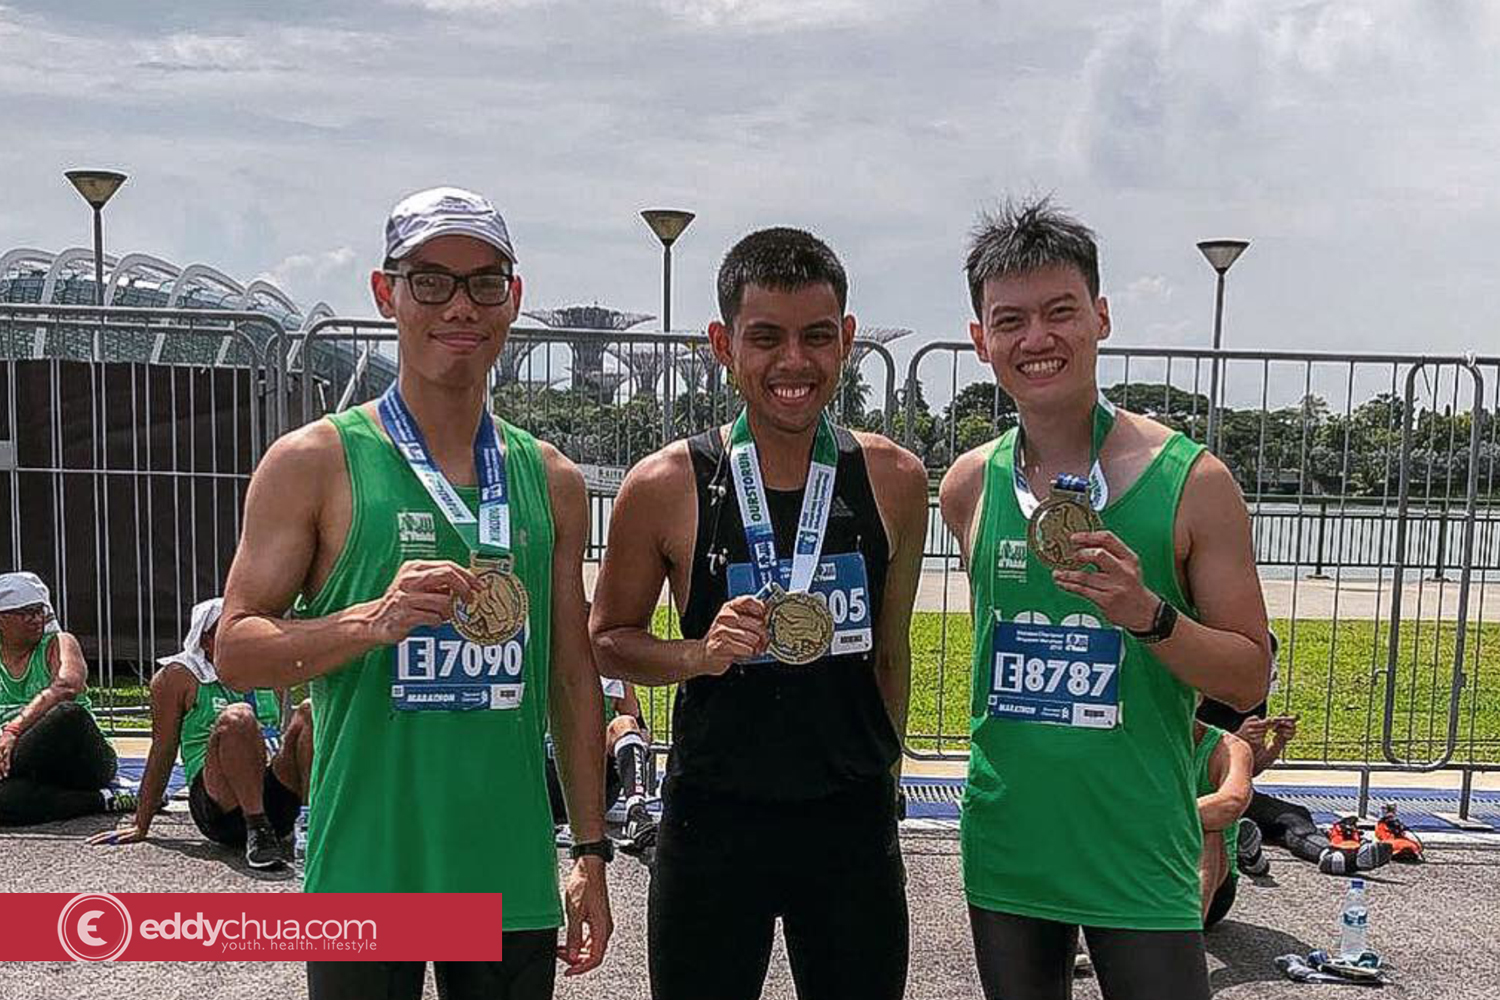 a0dc58f1dd The completion of my first ever full marathon on 9 December has to be my  greatest moment of 2018. Despite my drop in form throughout the year, ...